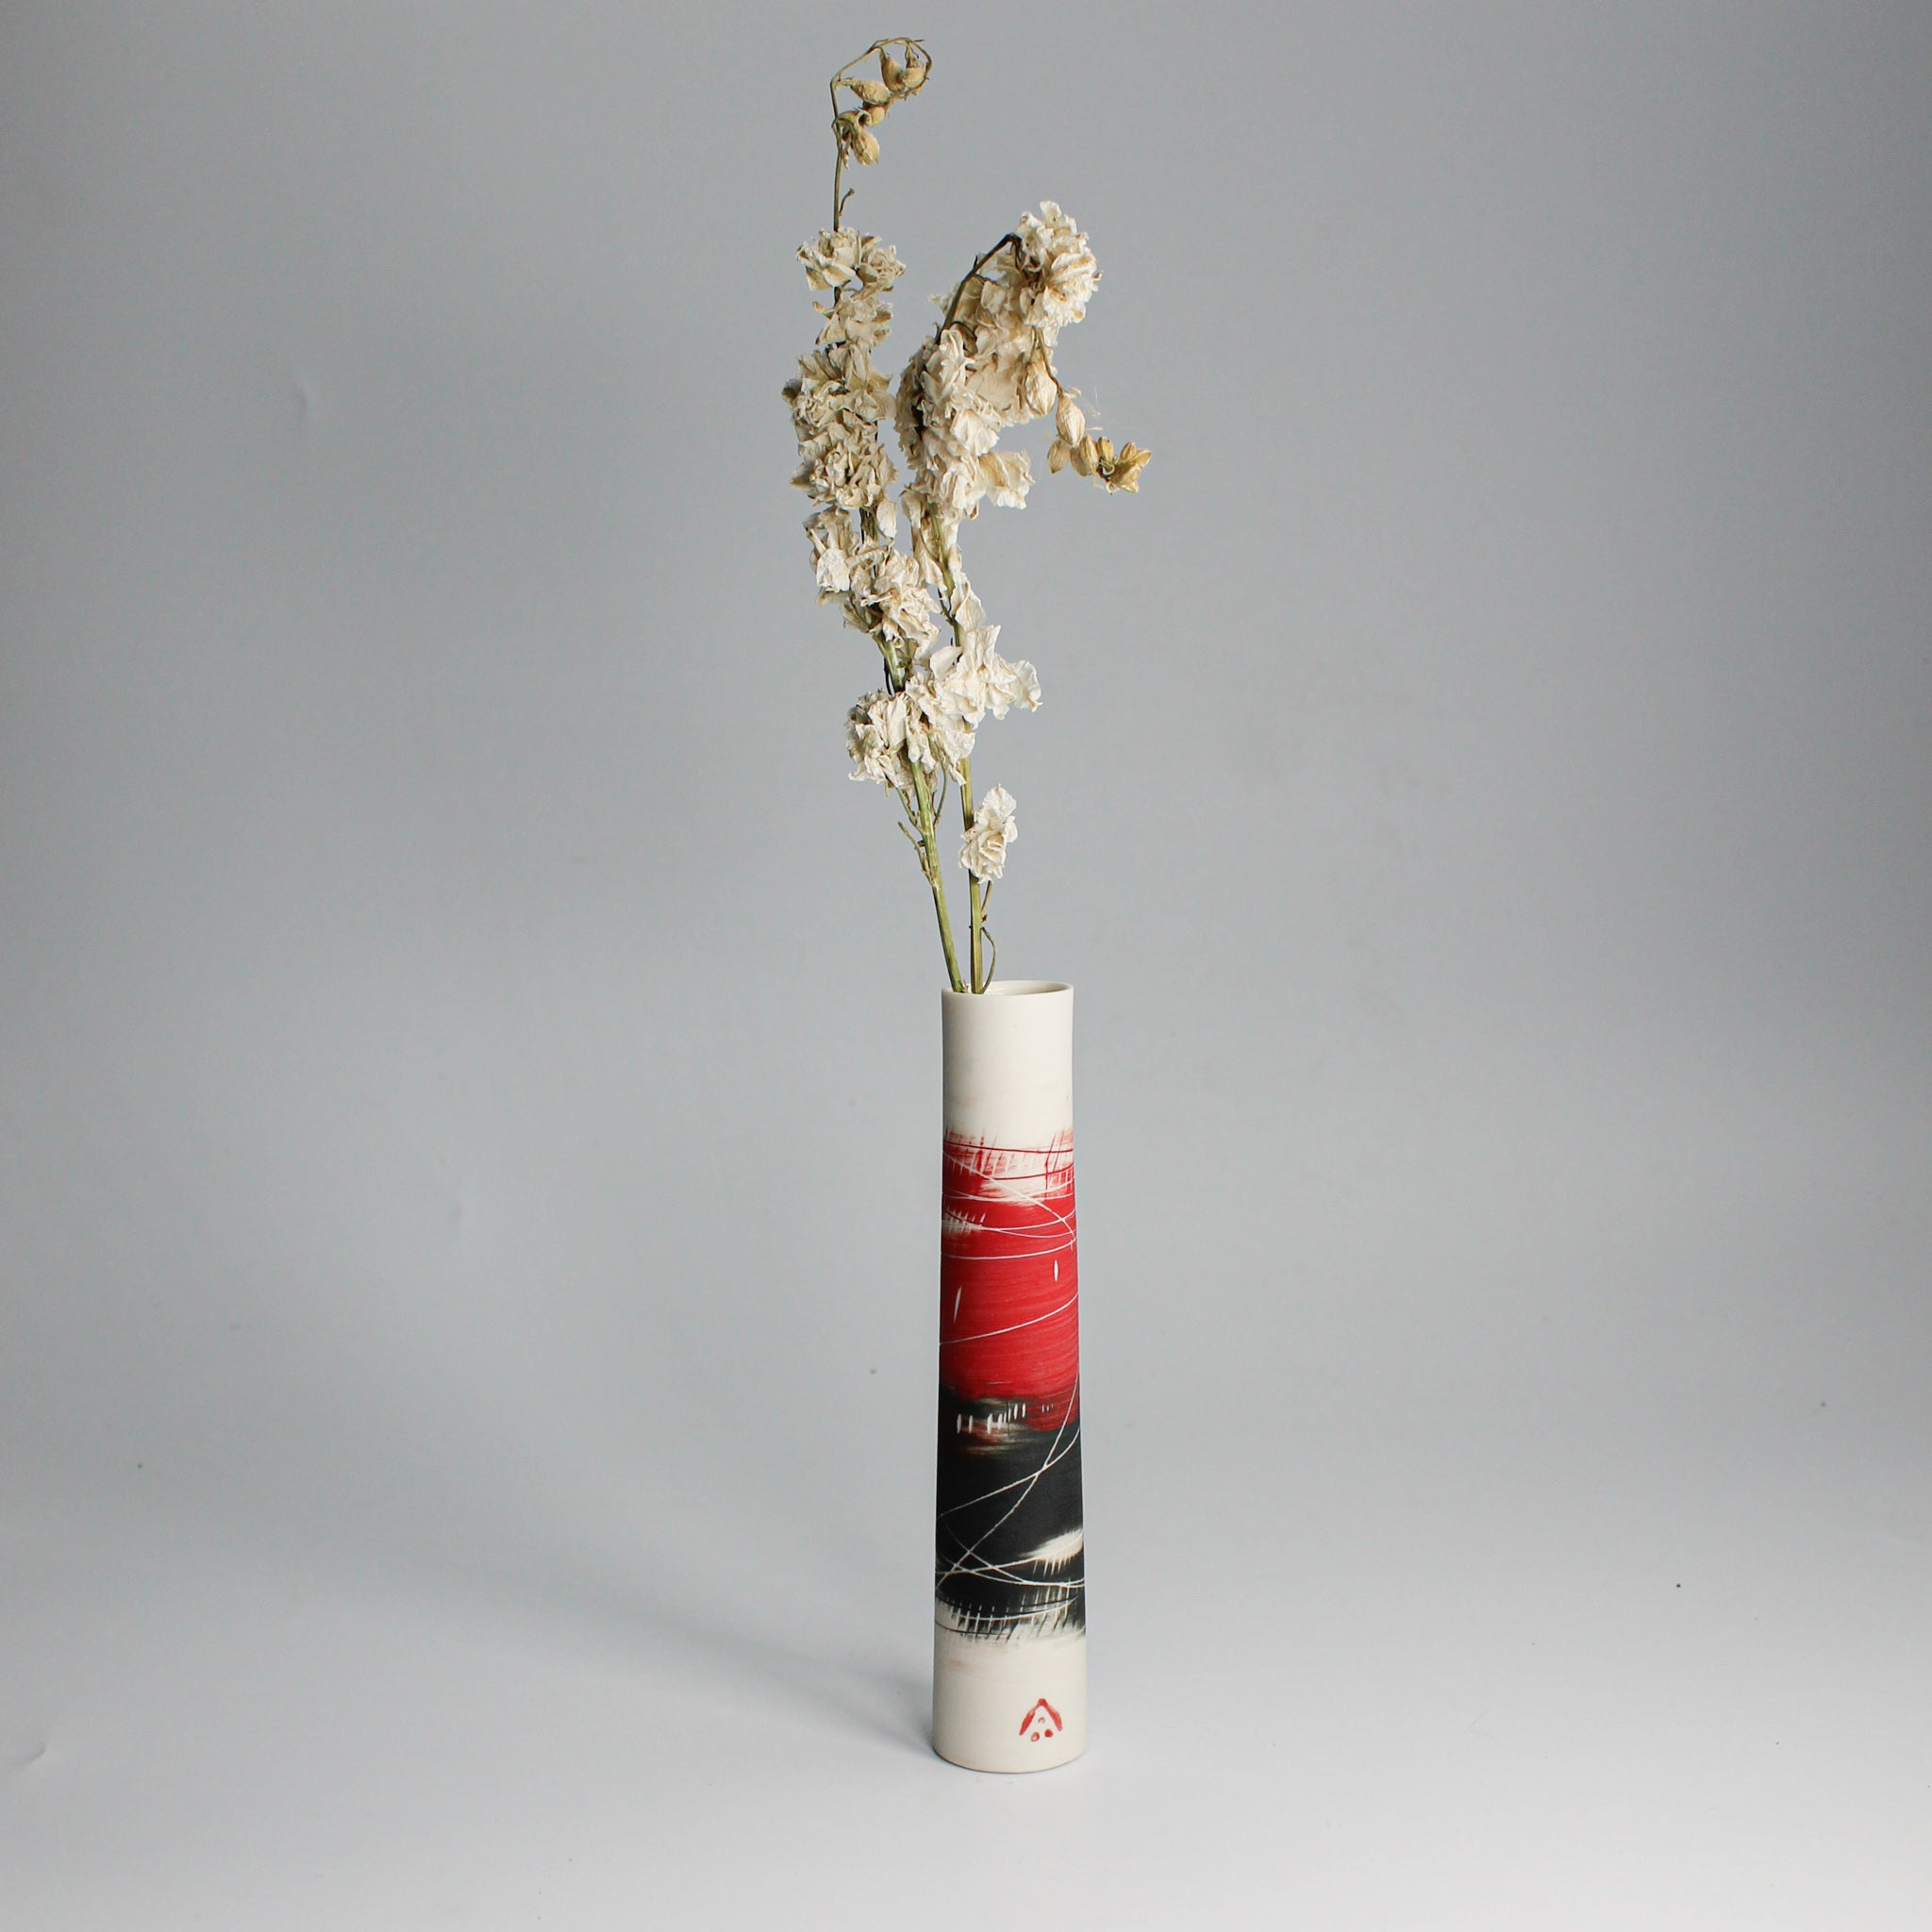 Red, white and black porcelain single stem vase